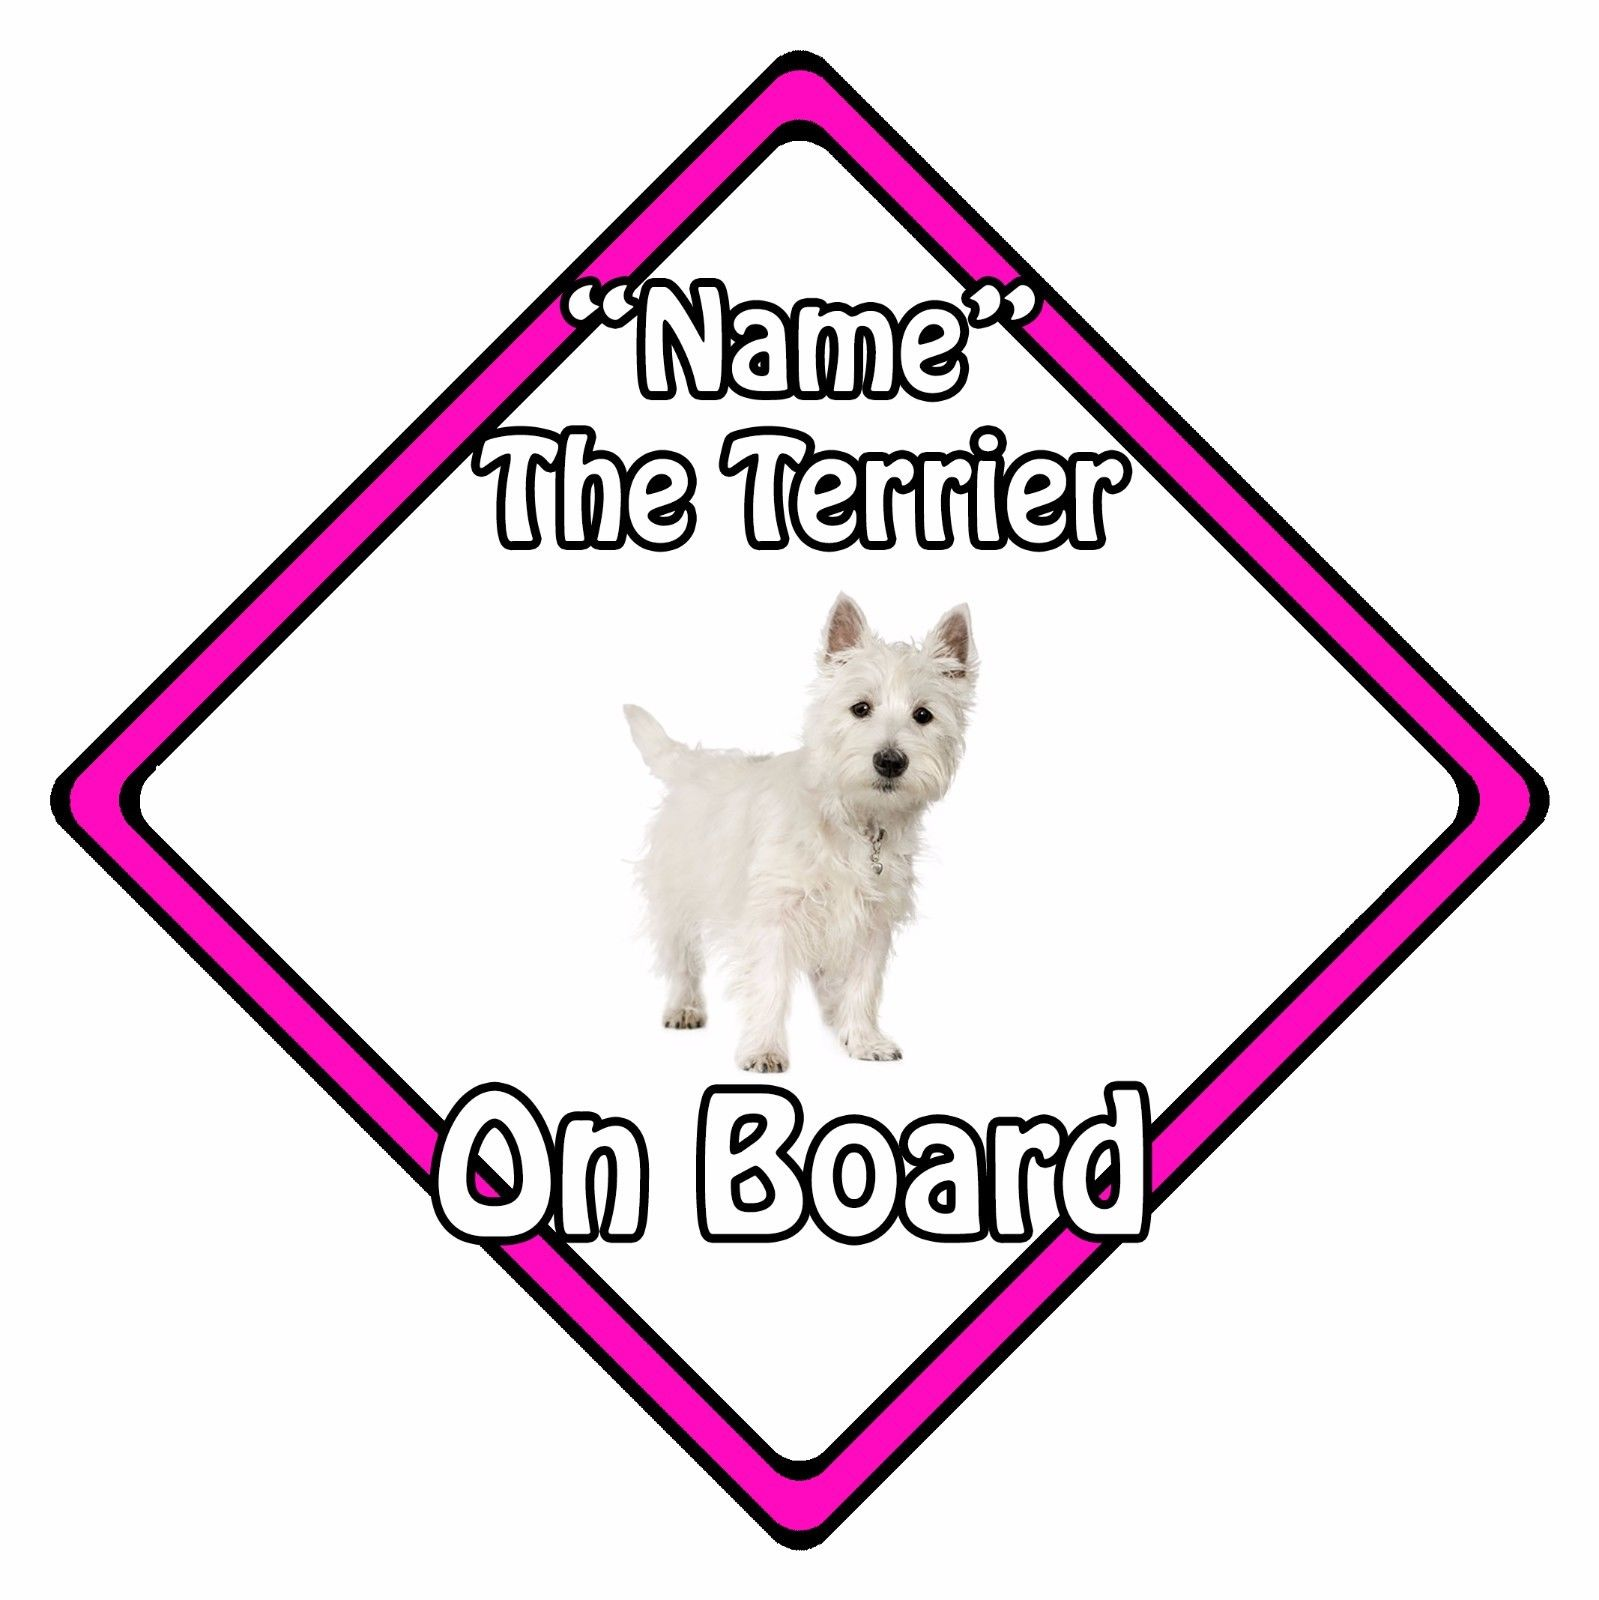 Personalised-Dog-On-Board-Car-Safety-Sign-White-Terrier-On-Board-Pink-152386895178